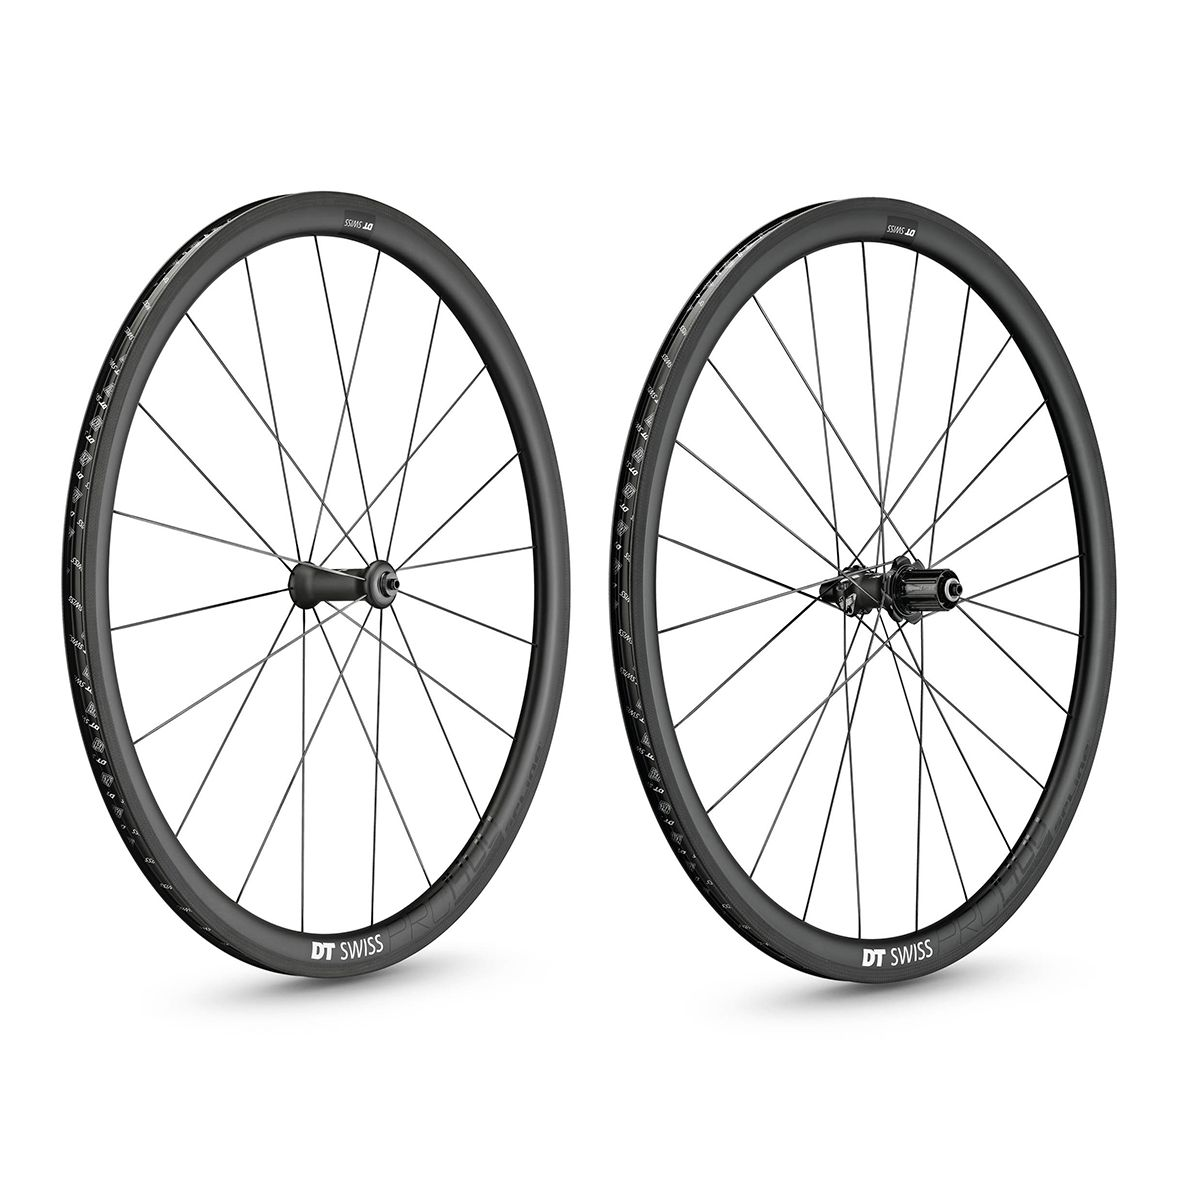 PRC 1400 Spline® 35 Carbon Road Wheels 28